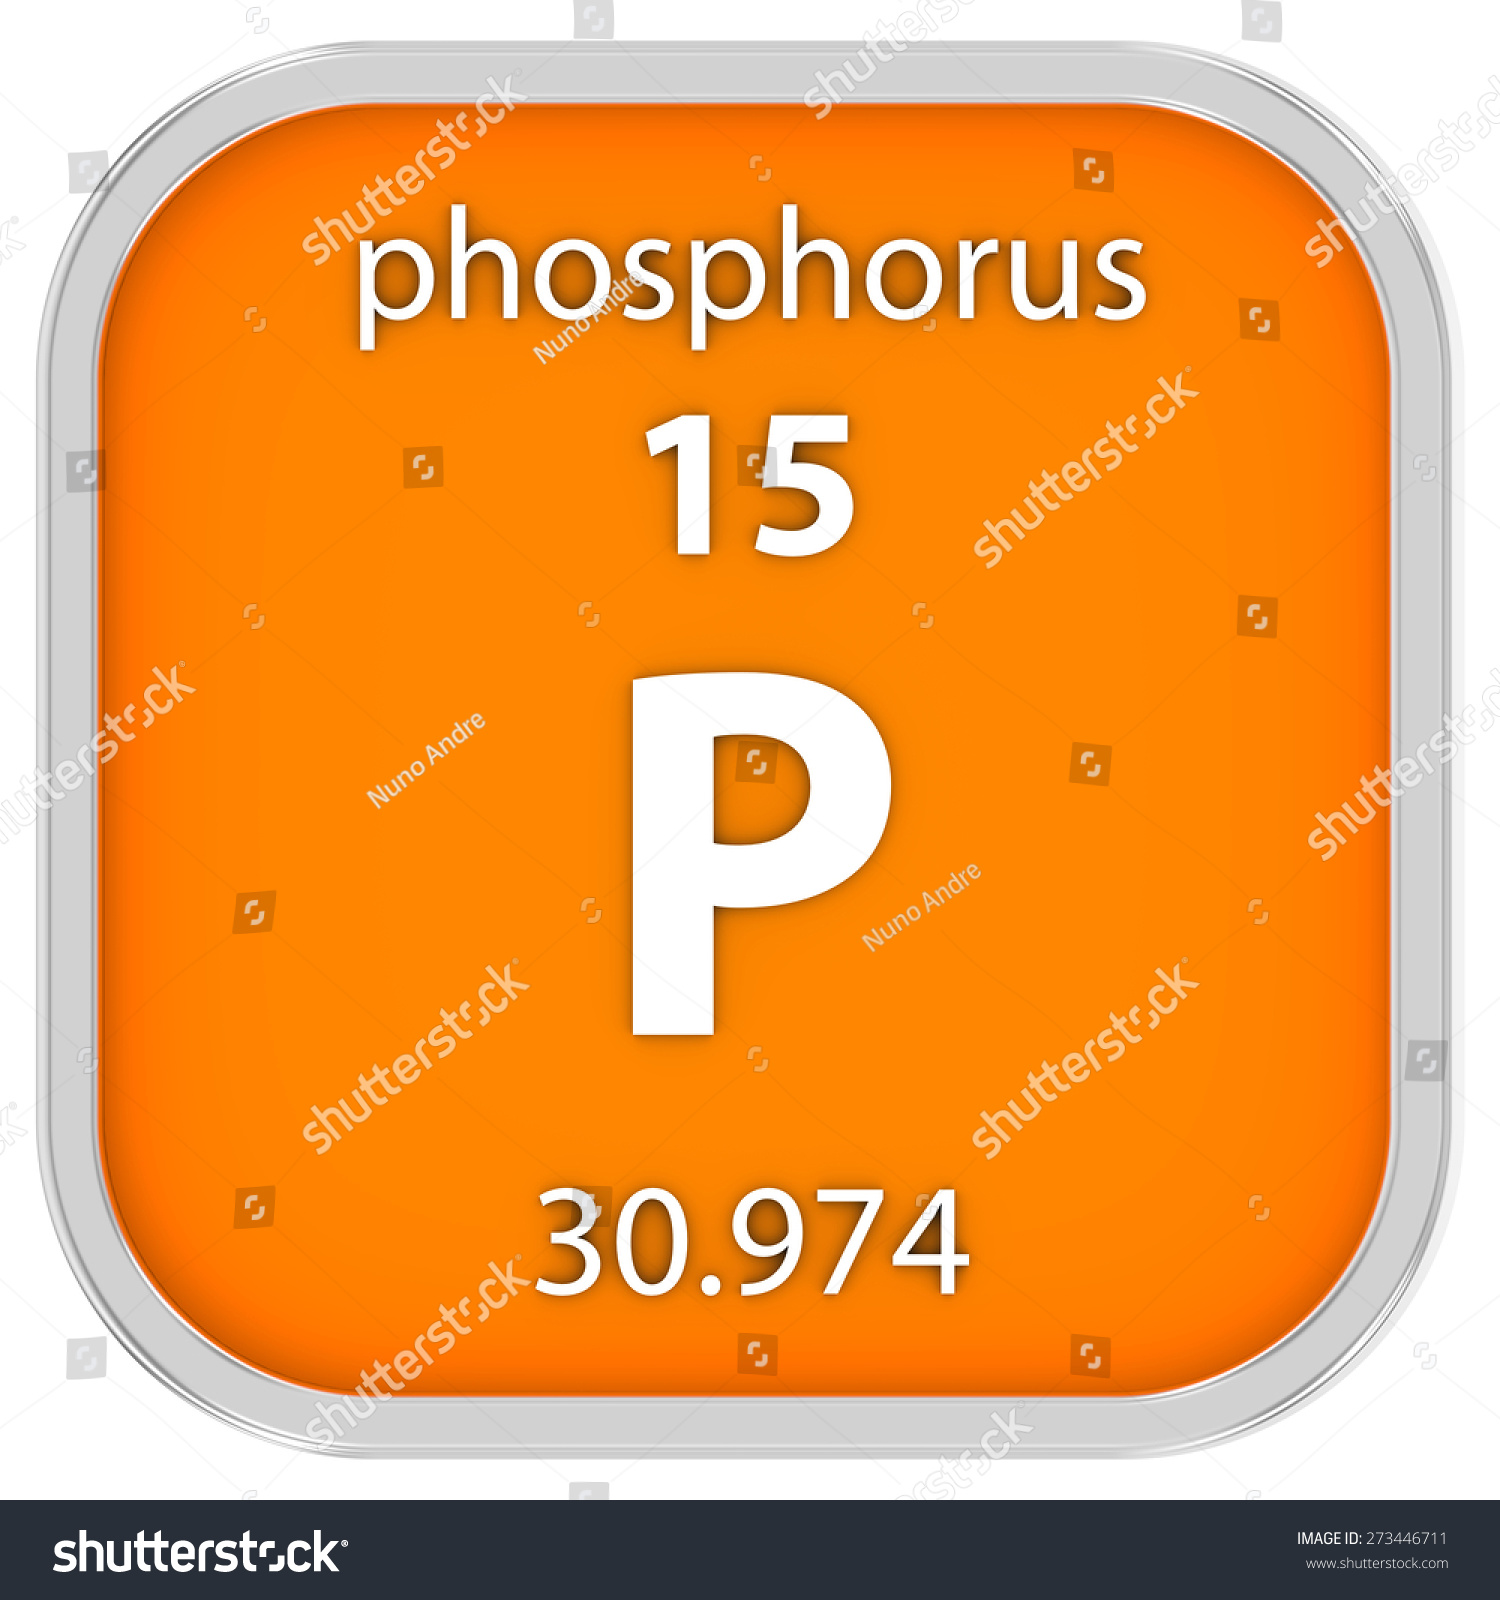 Phosphorus on periodic table image collections periodic table images phosphorus material on periodic table part stock illustration phosphorus material on the periodic table part of gamestrikefo Gallery